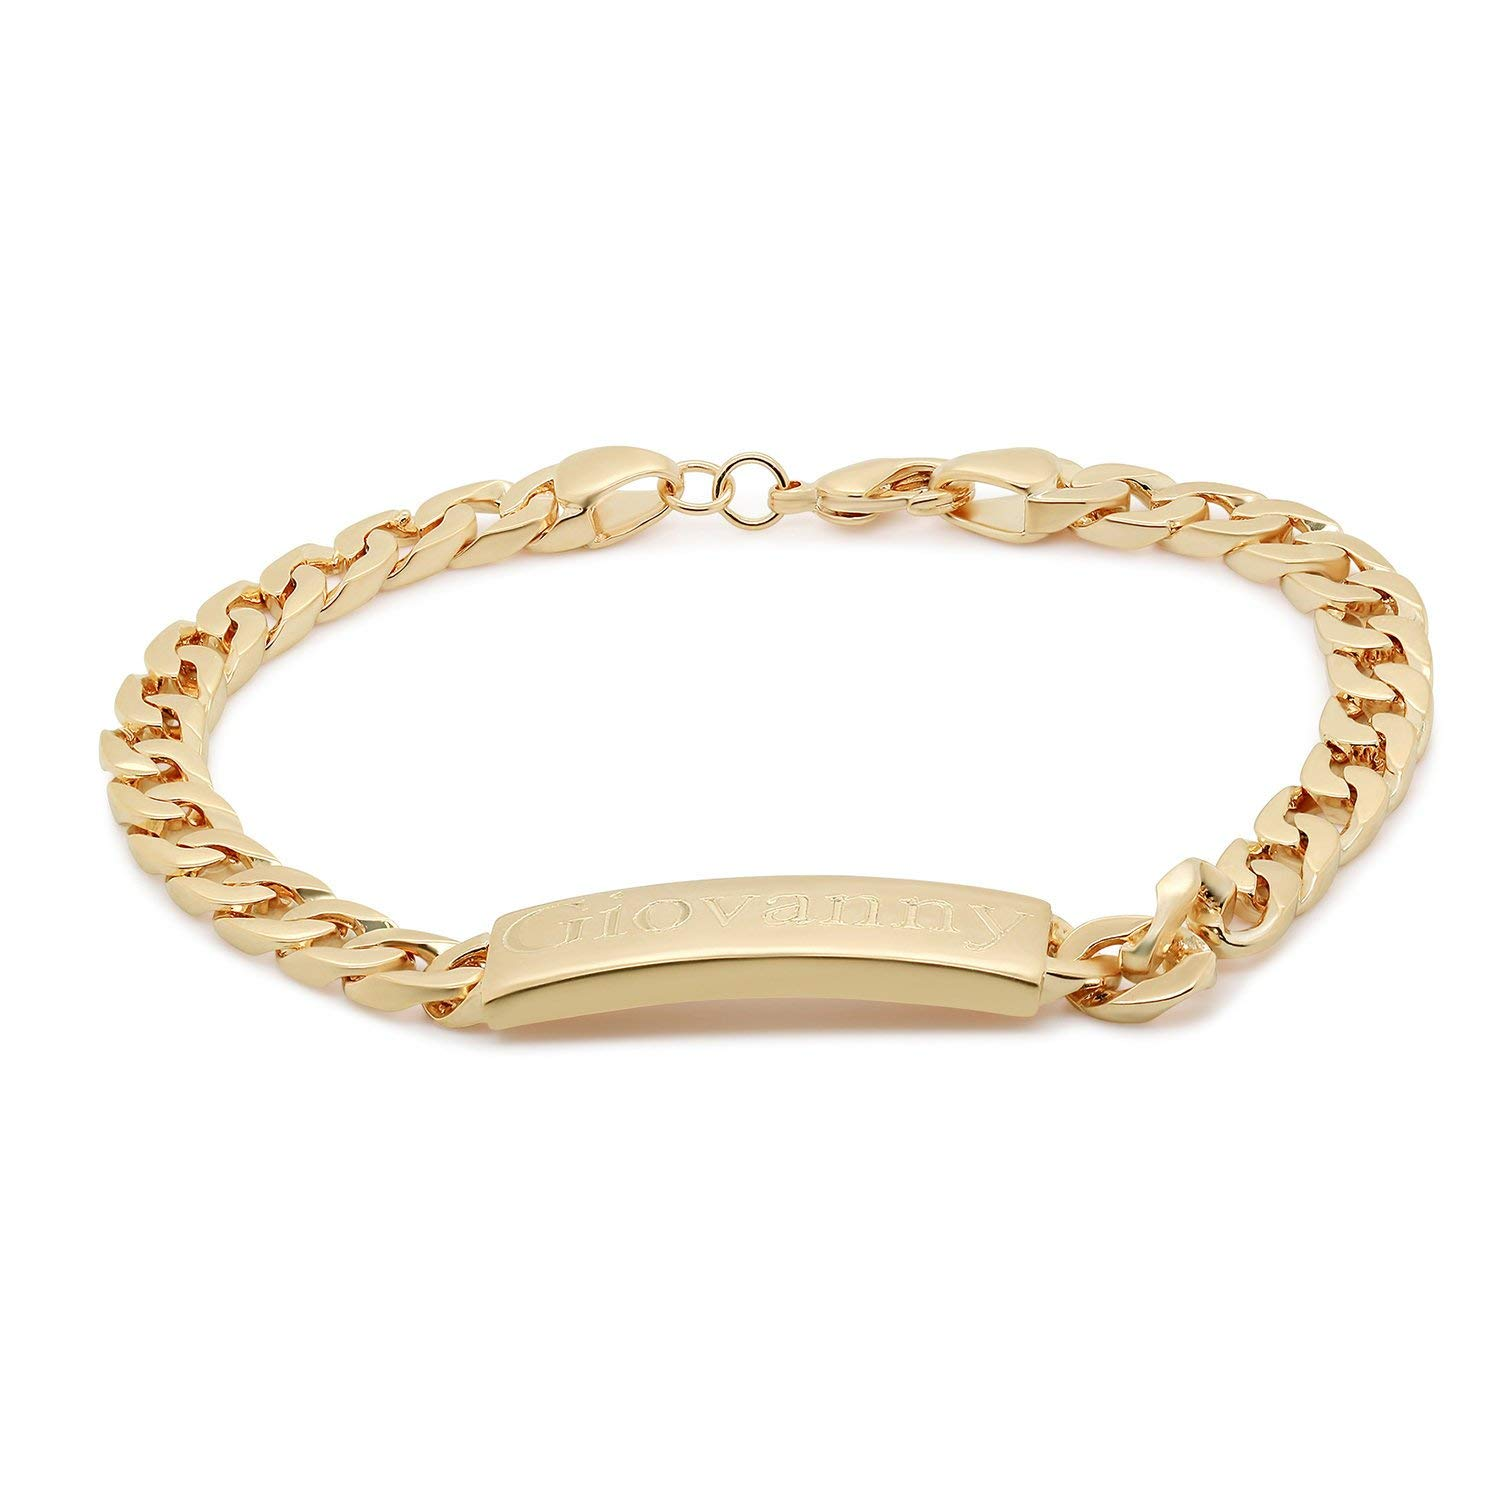 Fresh Personalized Unisex Gourmet Bracelet 18K Gold Plated Engraved Name Plate Gift 20